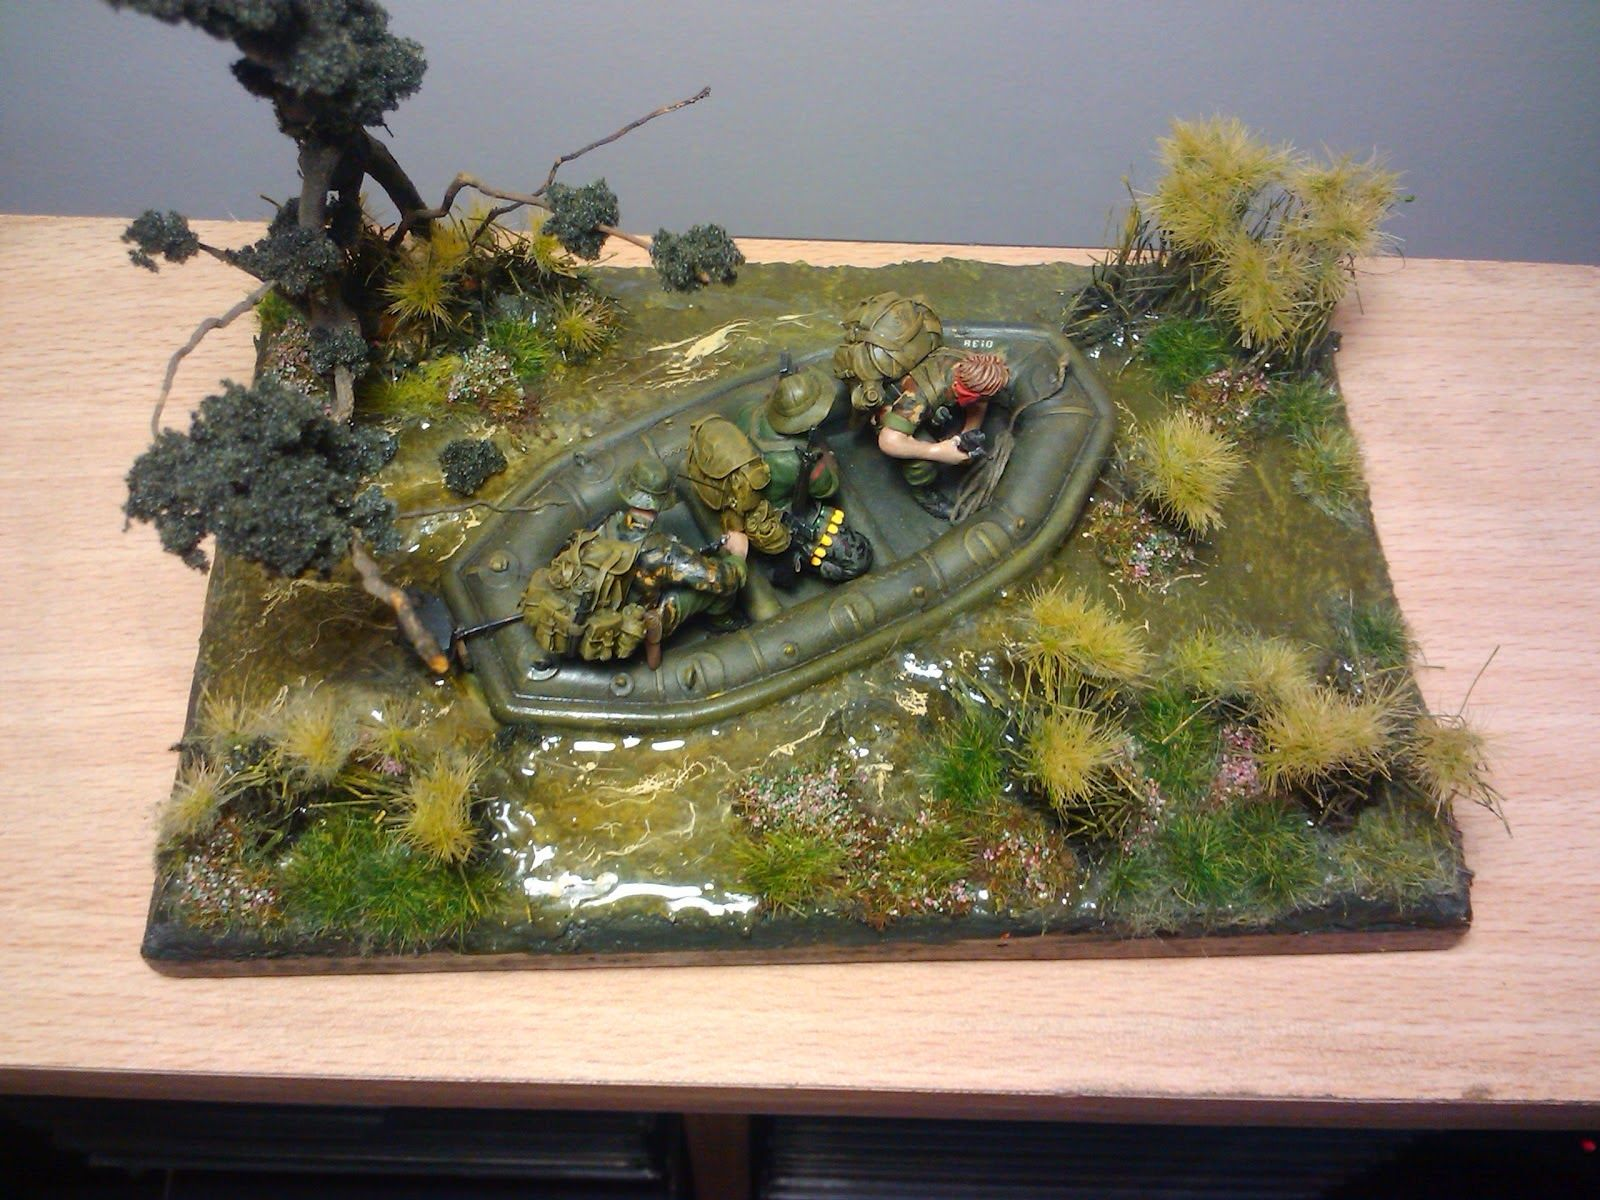 Scale model workbench 1 35 vietnam diorama models for Scale model ideas